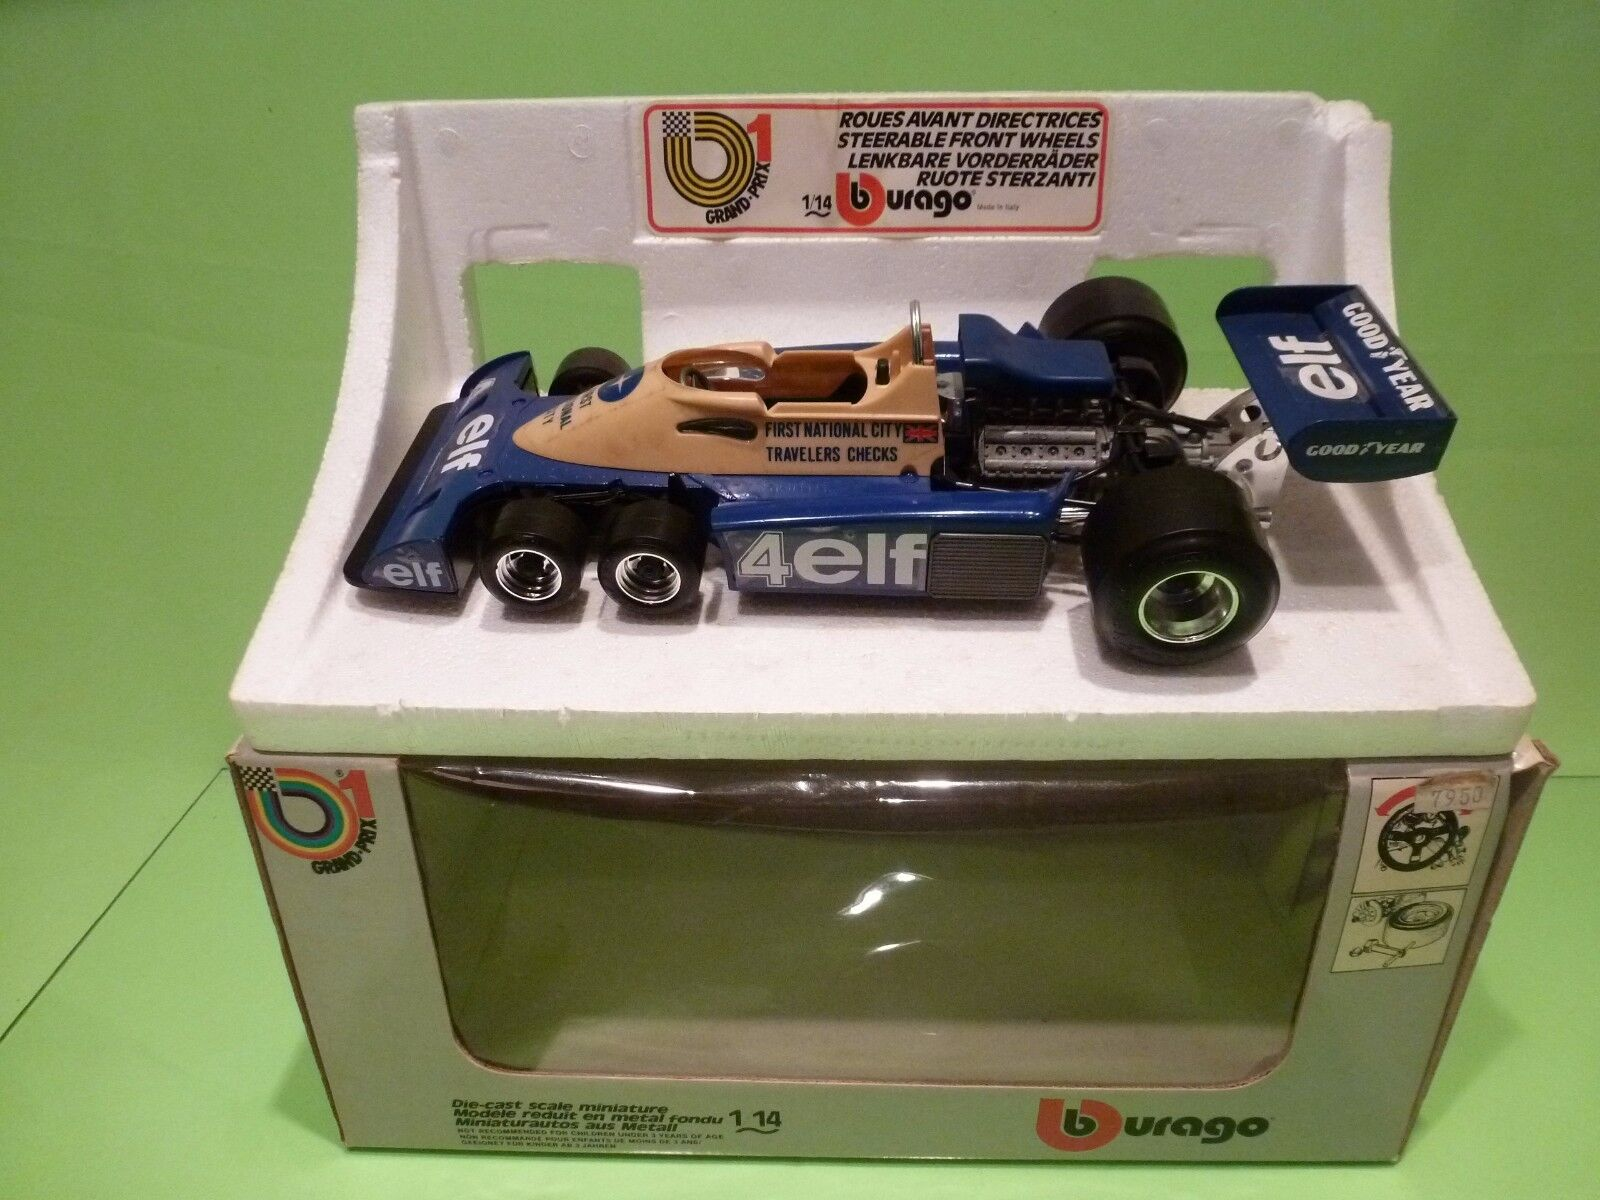 BBURAGO GRAND PRIX 1 TYRRELL 6-WHEELER - FIRST NATIONAL CITY - F1 1 14  - GIB